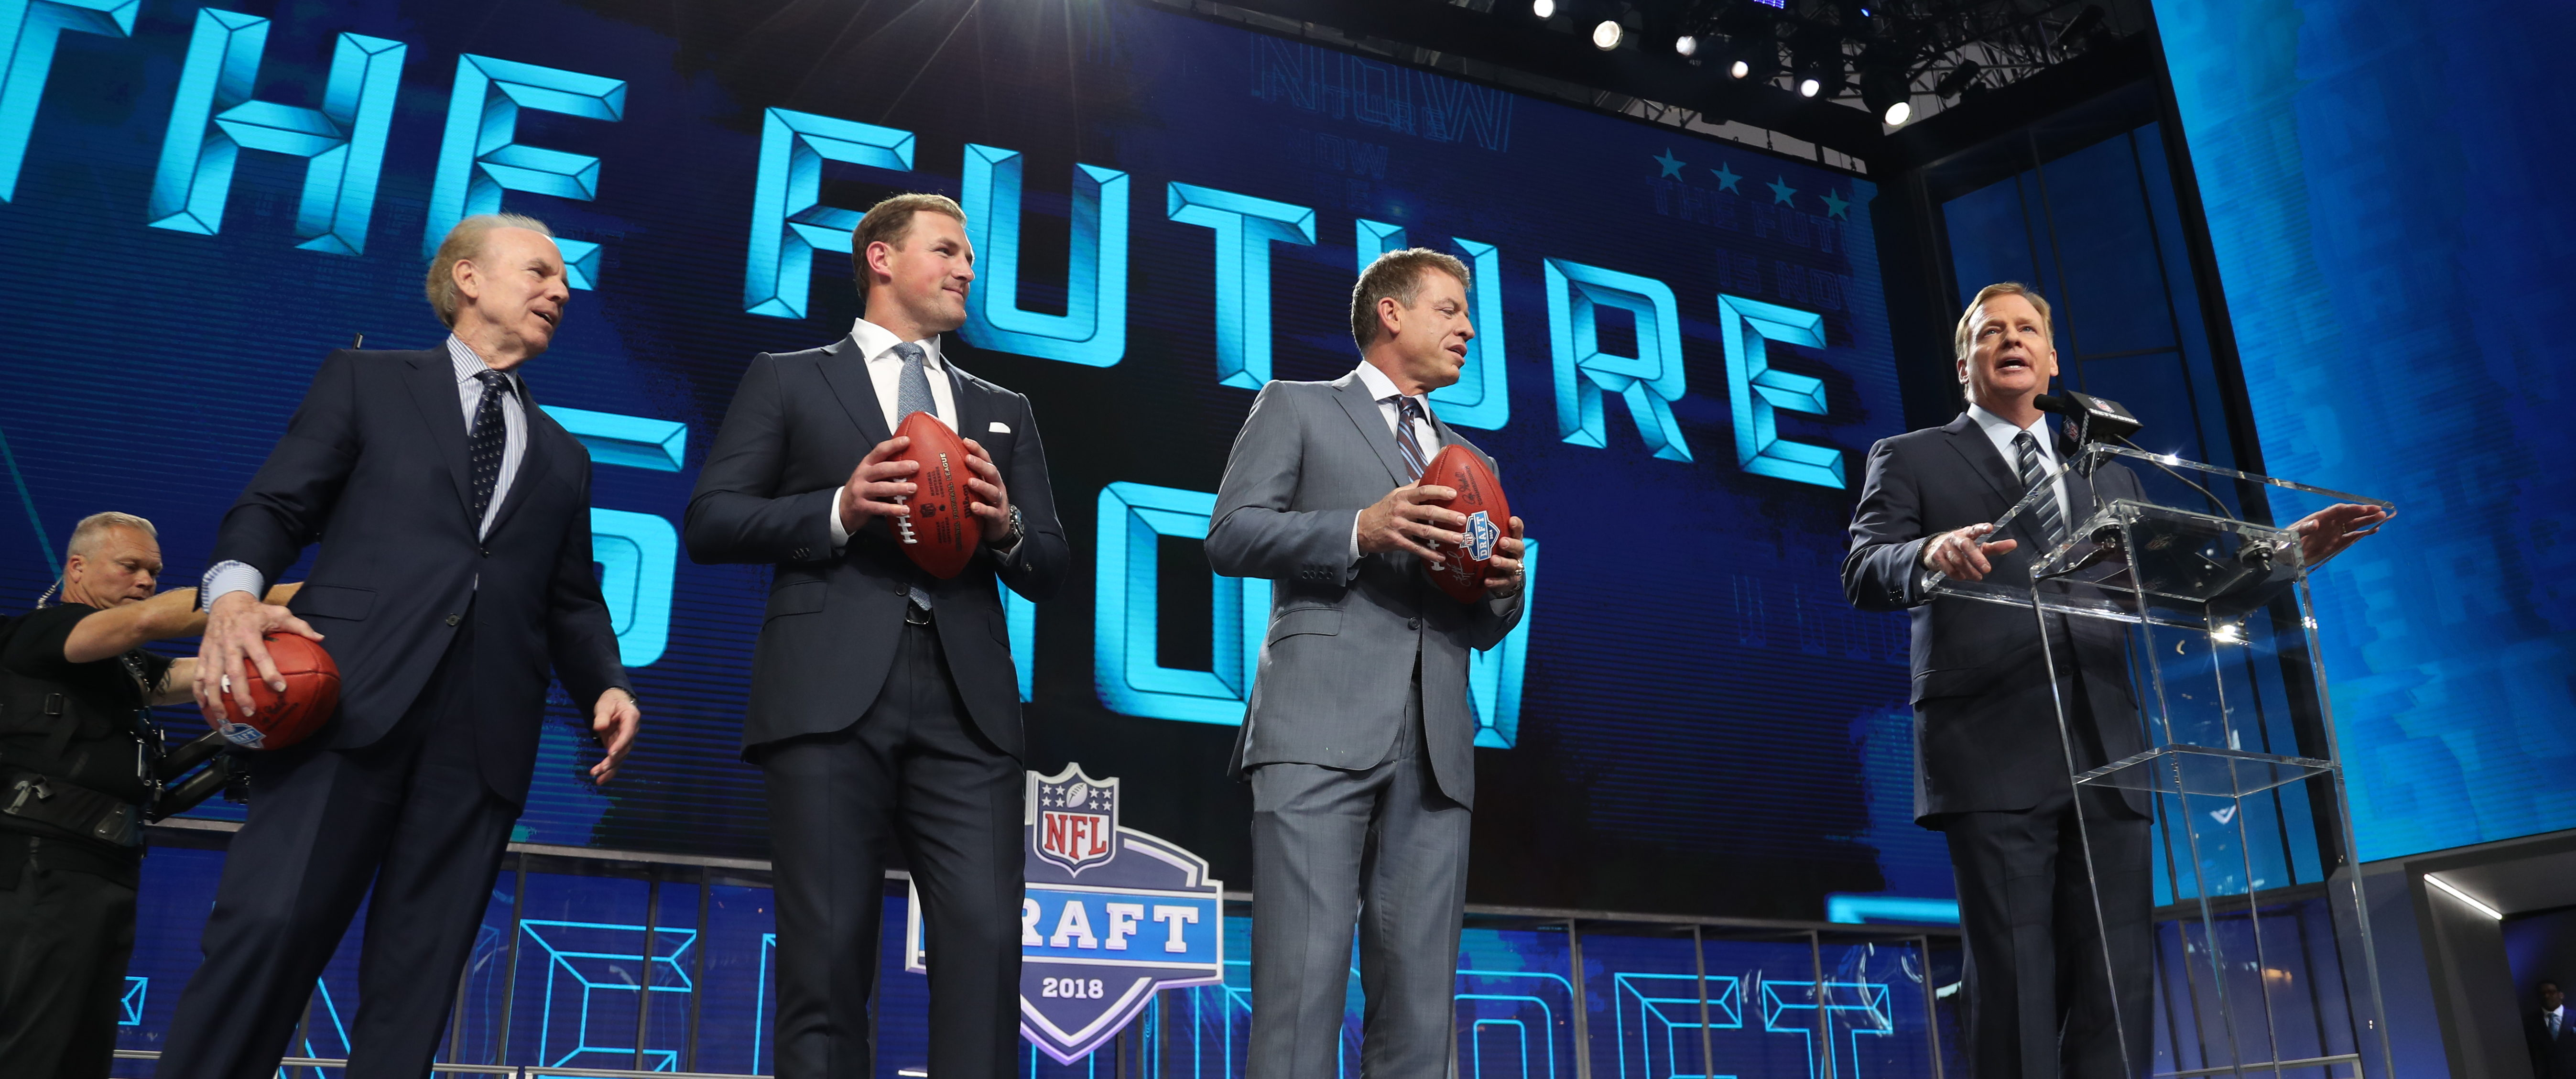 Apr 26, 2018; Arlington, TX, USA; NFL commissioner Roger Goodell starts the 2018 Draft with (from left) Roger Staubach Jason Witten and Troy Aikman to start the first round of the 2018 NFL Draft at AT&T Stadium. (Matthew Emmons-USA TODAY Sports)